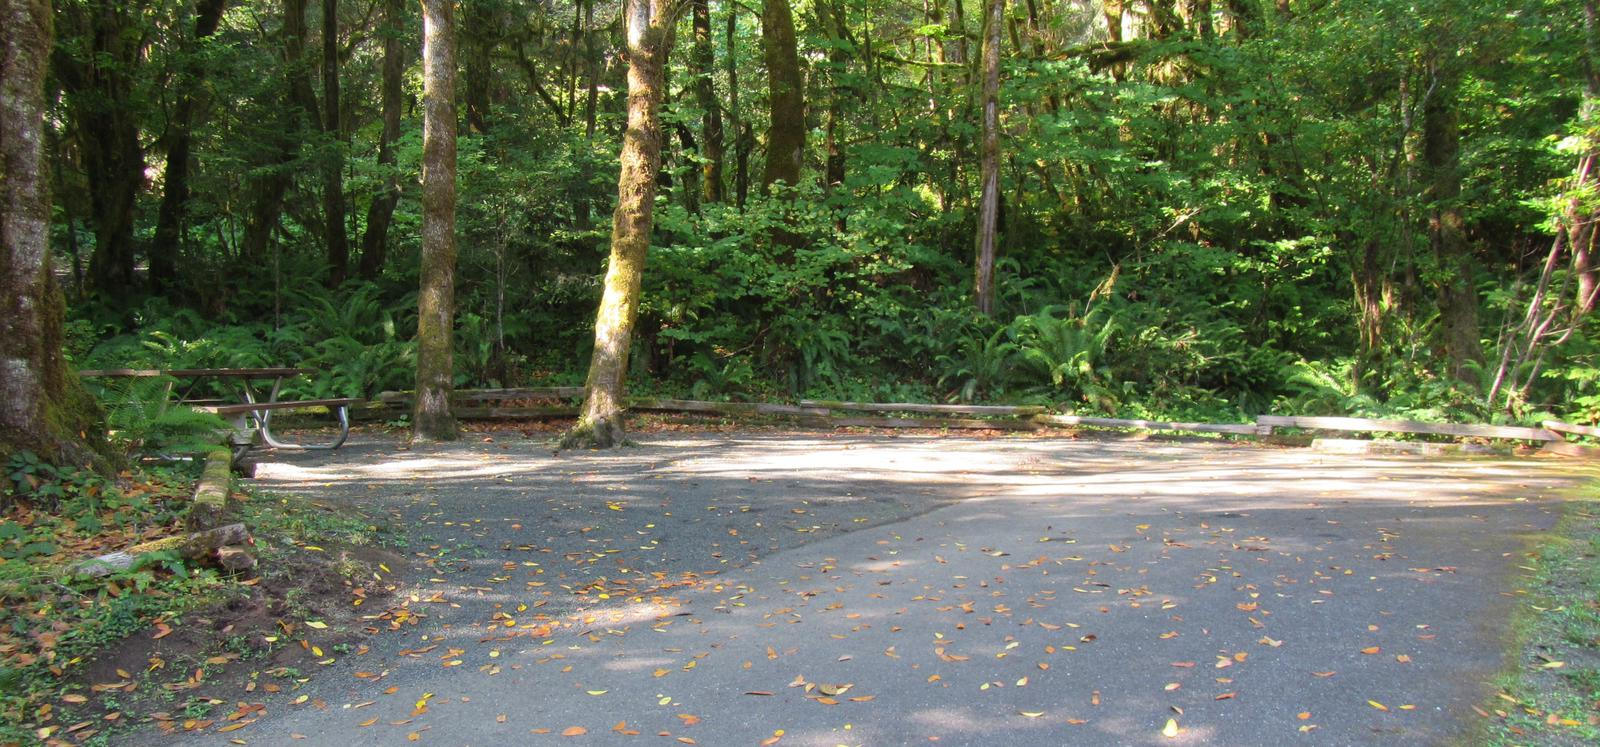 46' parking spur, 2 small trees in the center of camping area